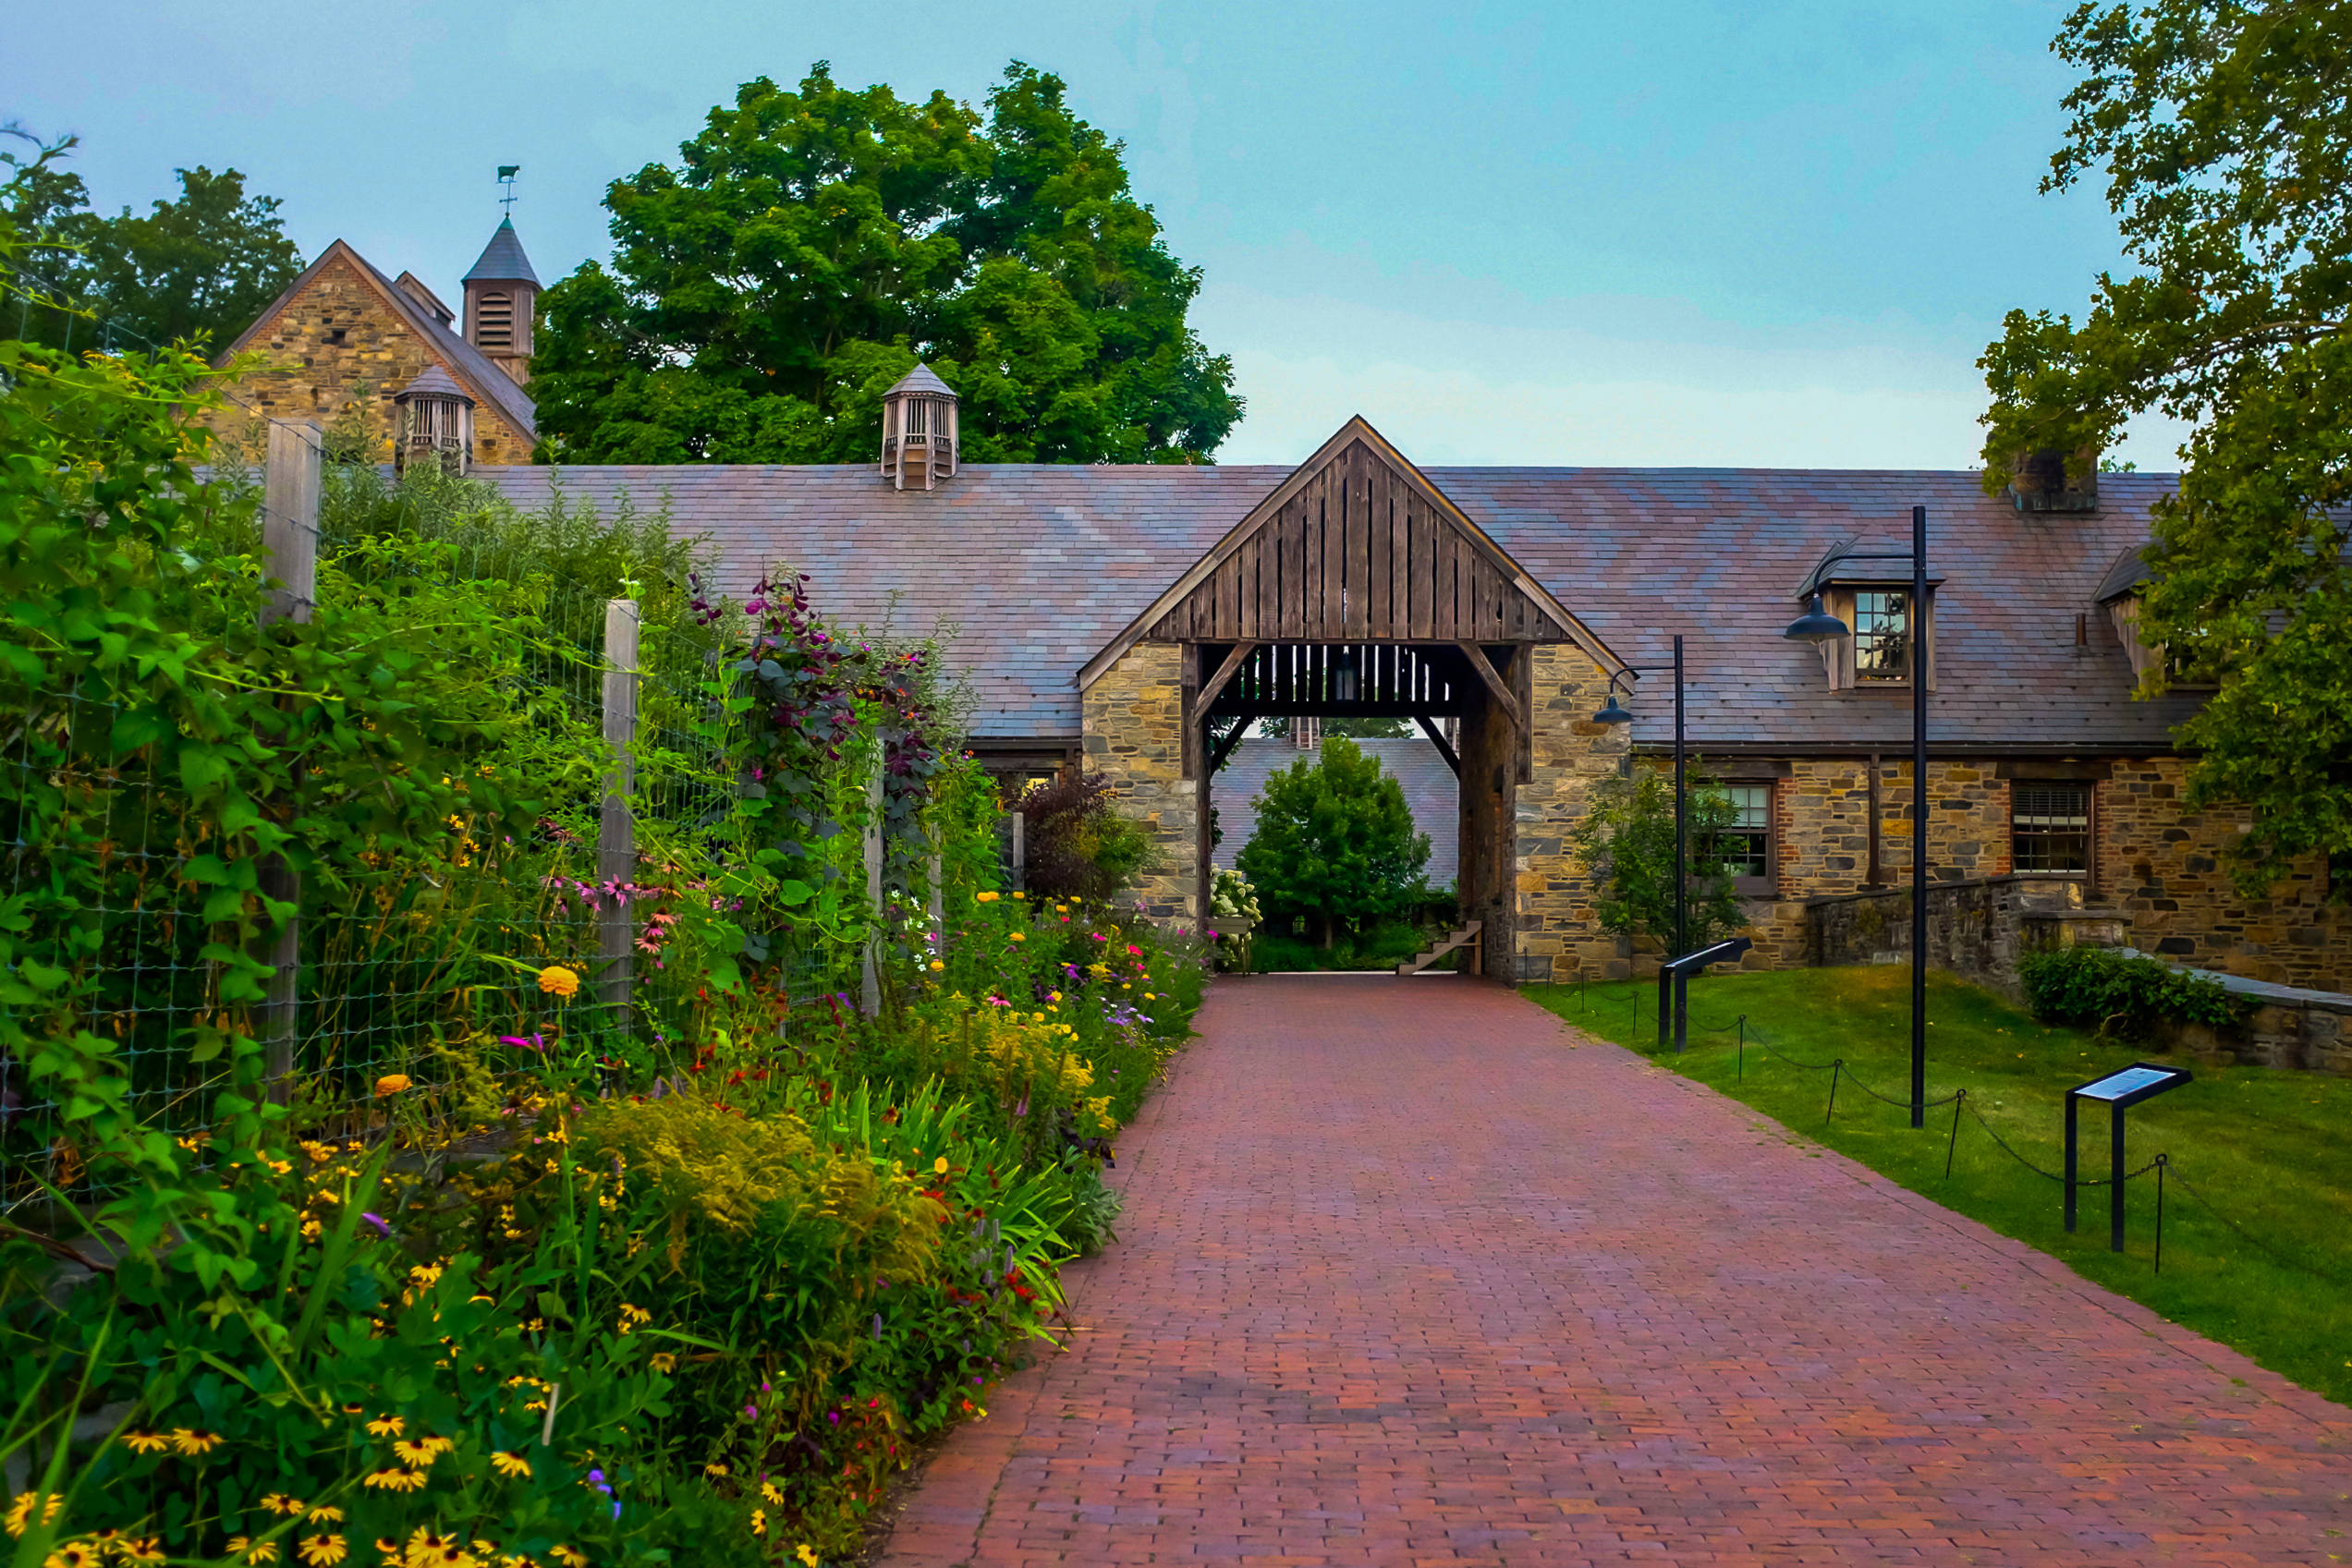 Blue Hill at Stone Barns has lush greenery and a stone building